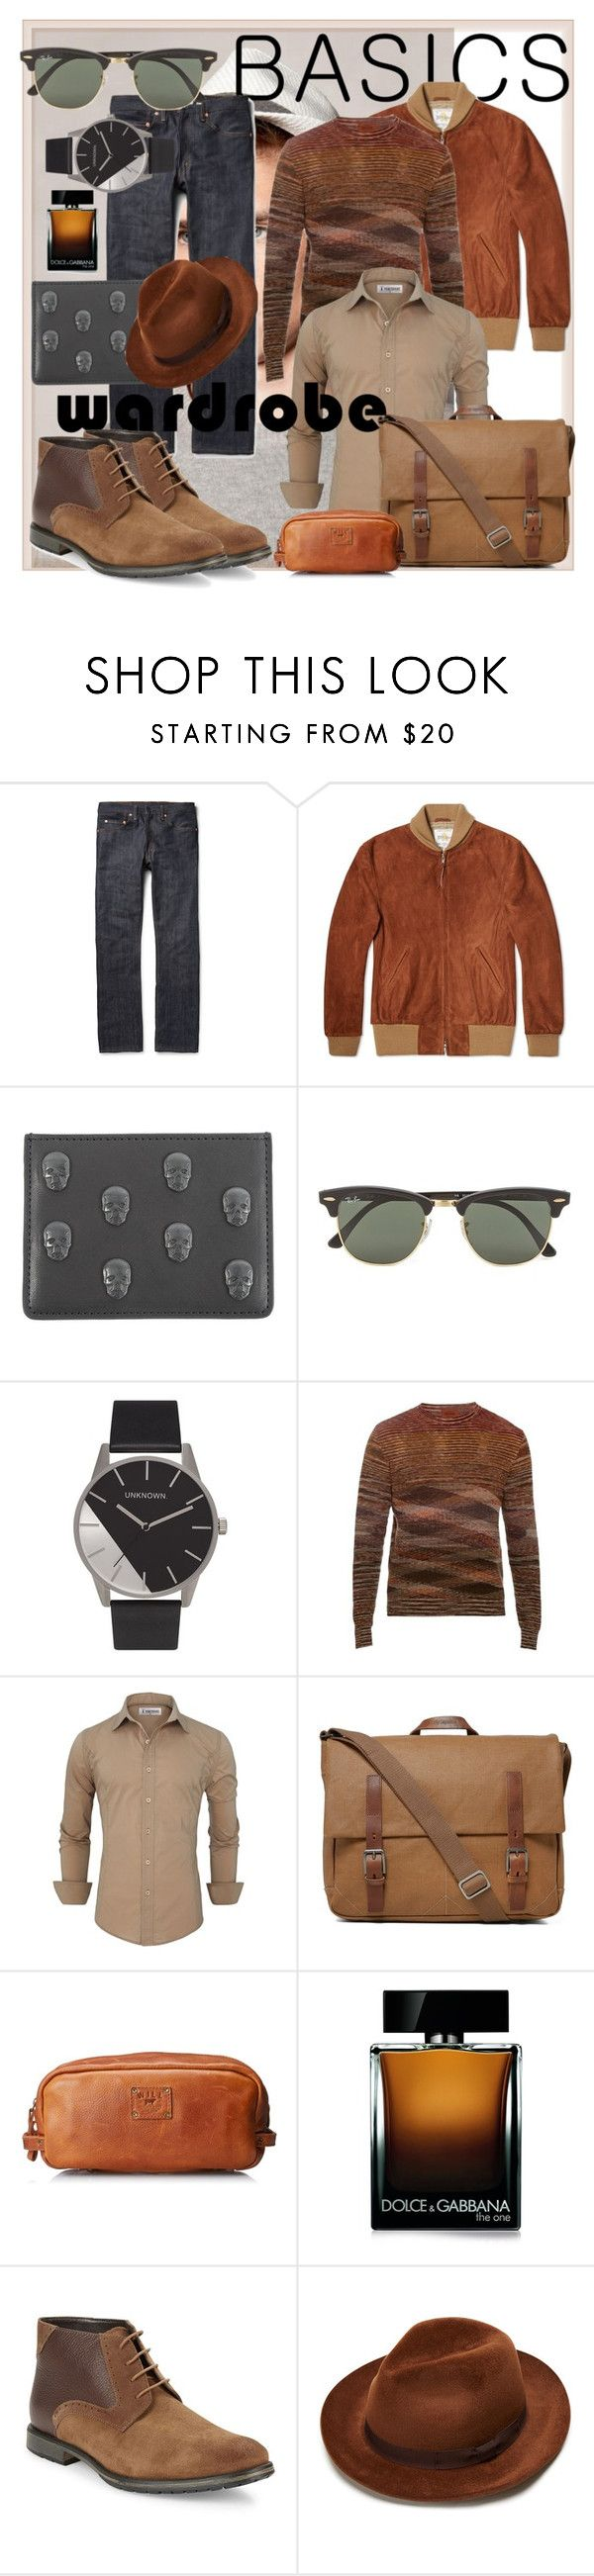 """""""ModernBoy"""" by andrea2andare ❤ liked on Polyvore featuring Levi's, Golden Bear, Lucien Pellat-Finet, Ray-Ban, Missoni, Ally Capellino, Will Leather Goods, Dolce&Gabbana, BLACK BROWN 1826 and modern"""